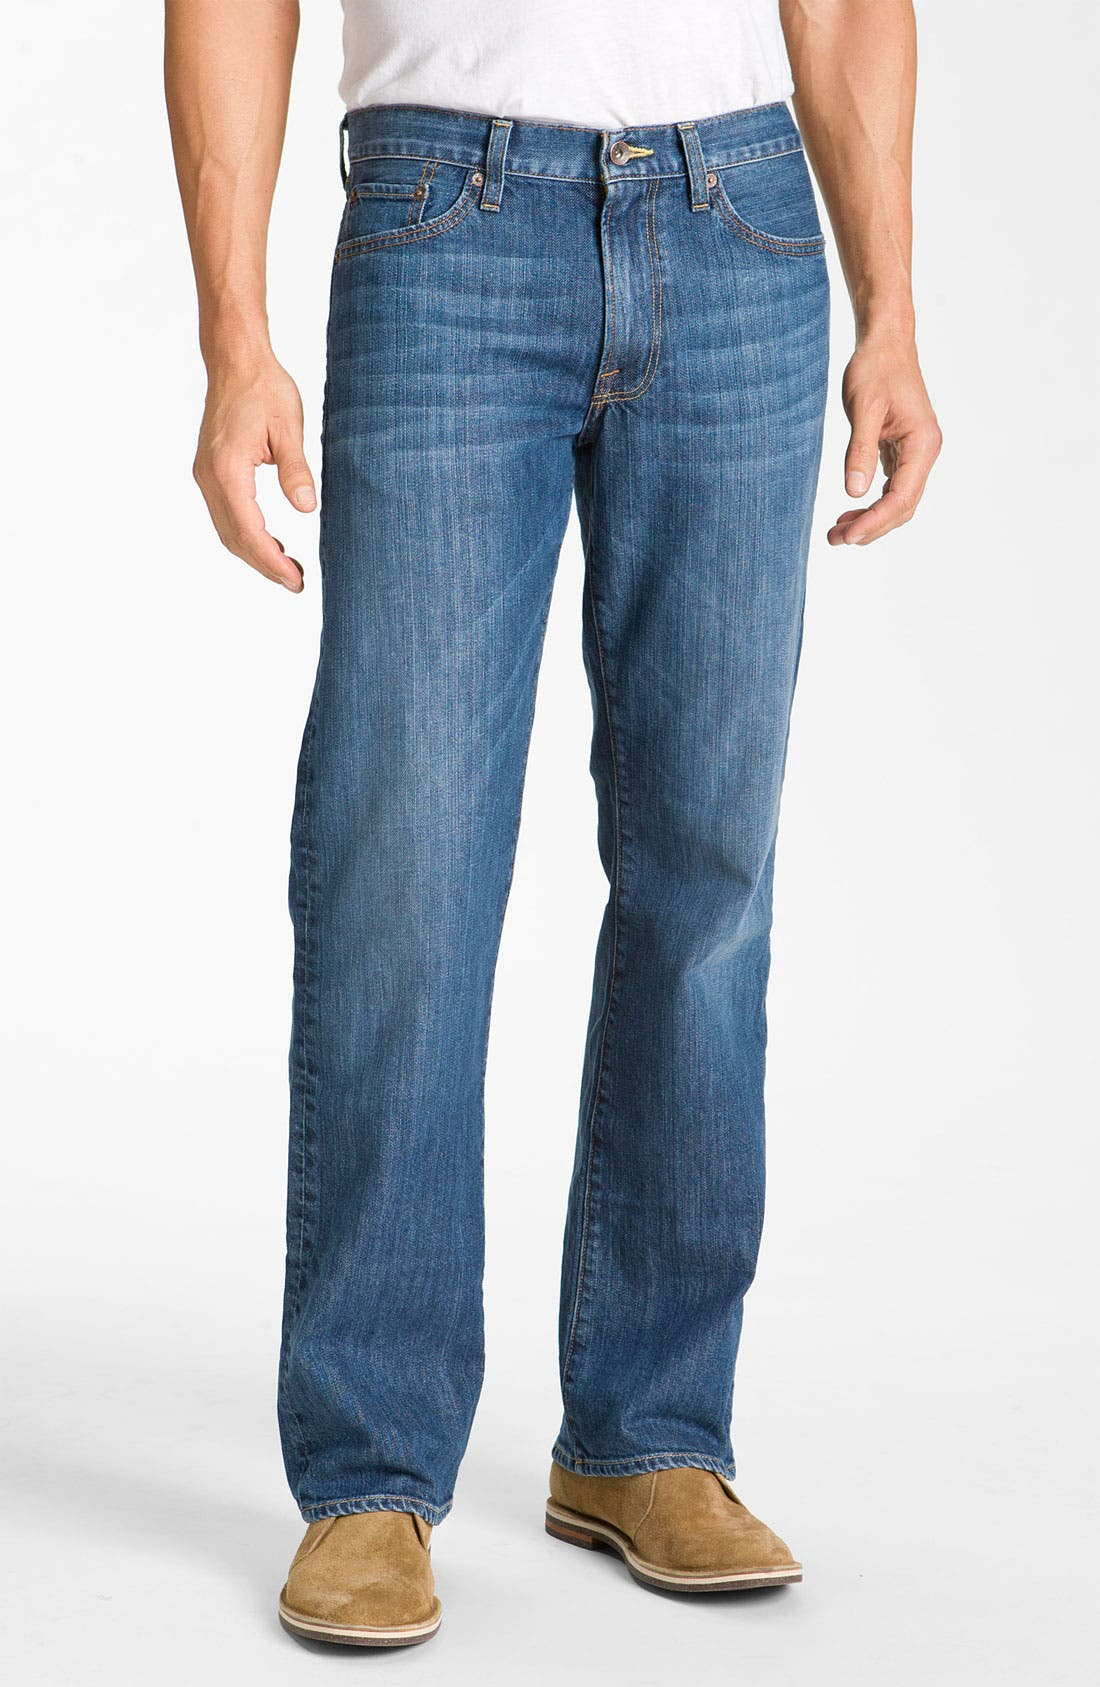 Alternate Image 1 Selected - Lucky Brand '361 Vintage' Straight Leg Jeans (Rinse)